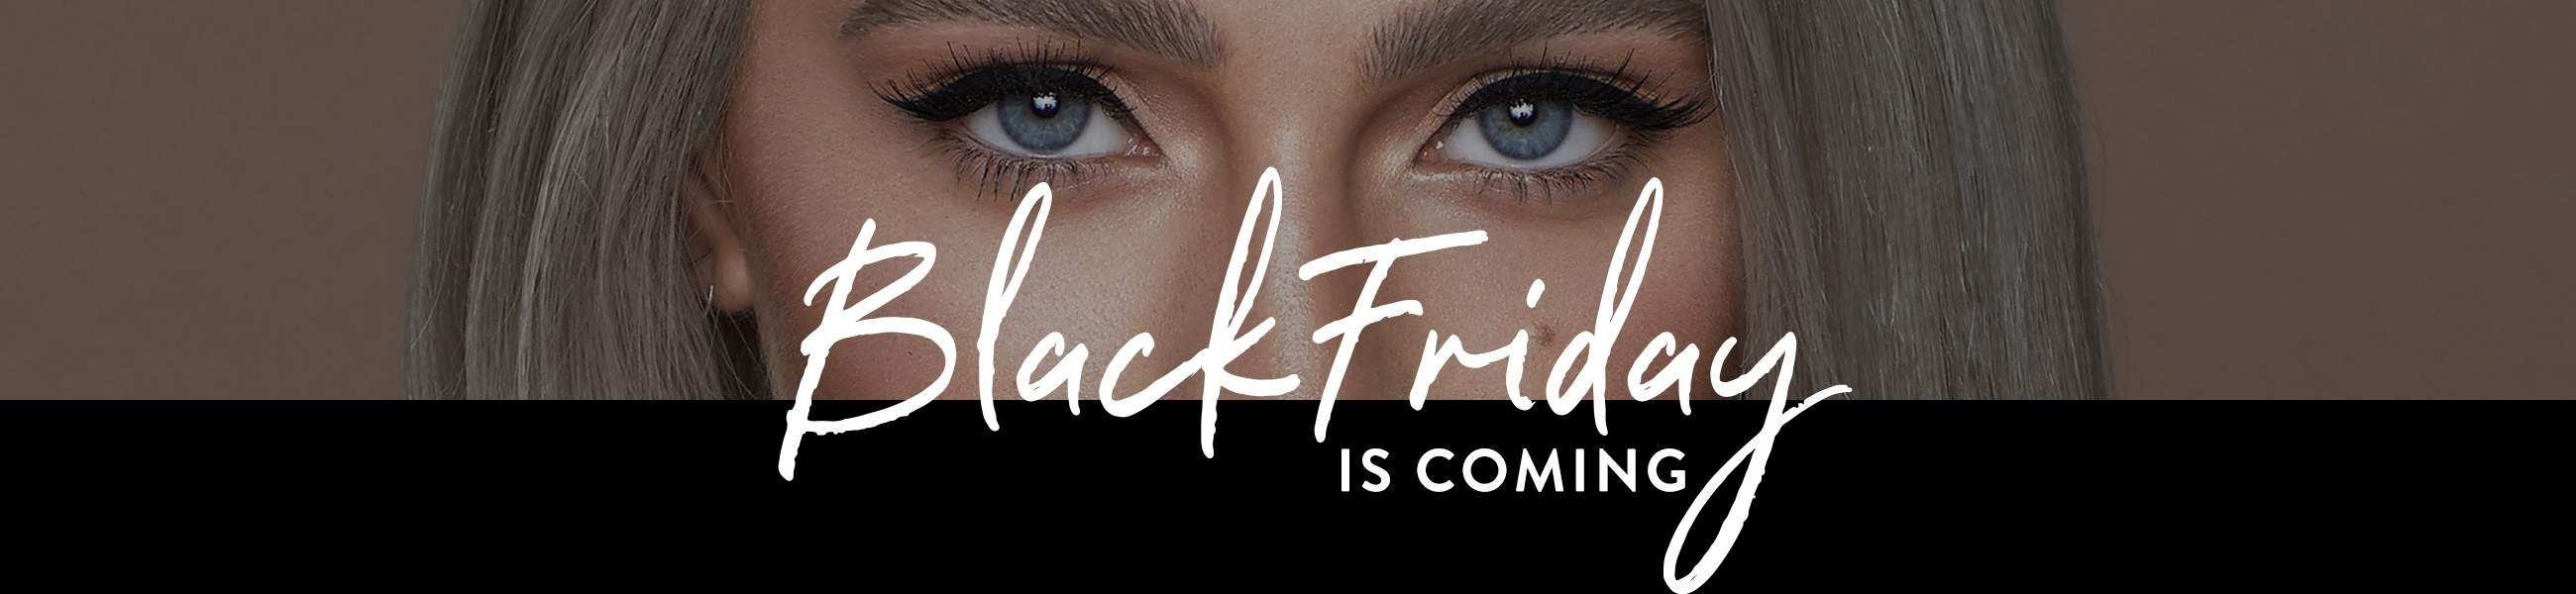 HD Brows Black Friday 2018